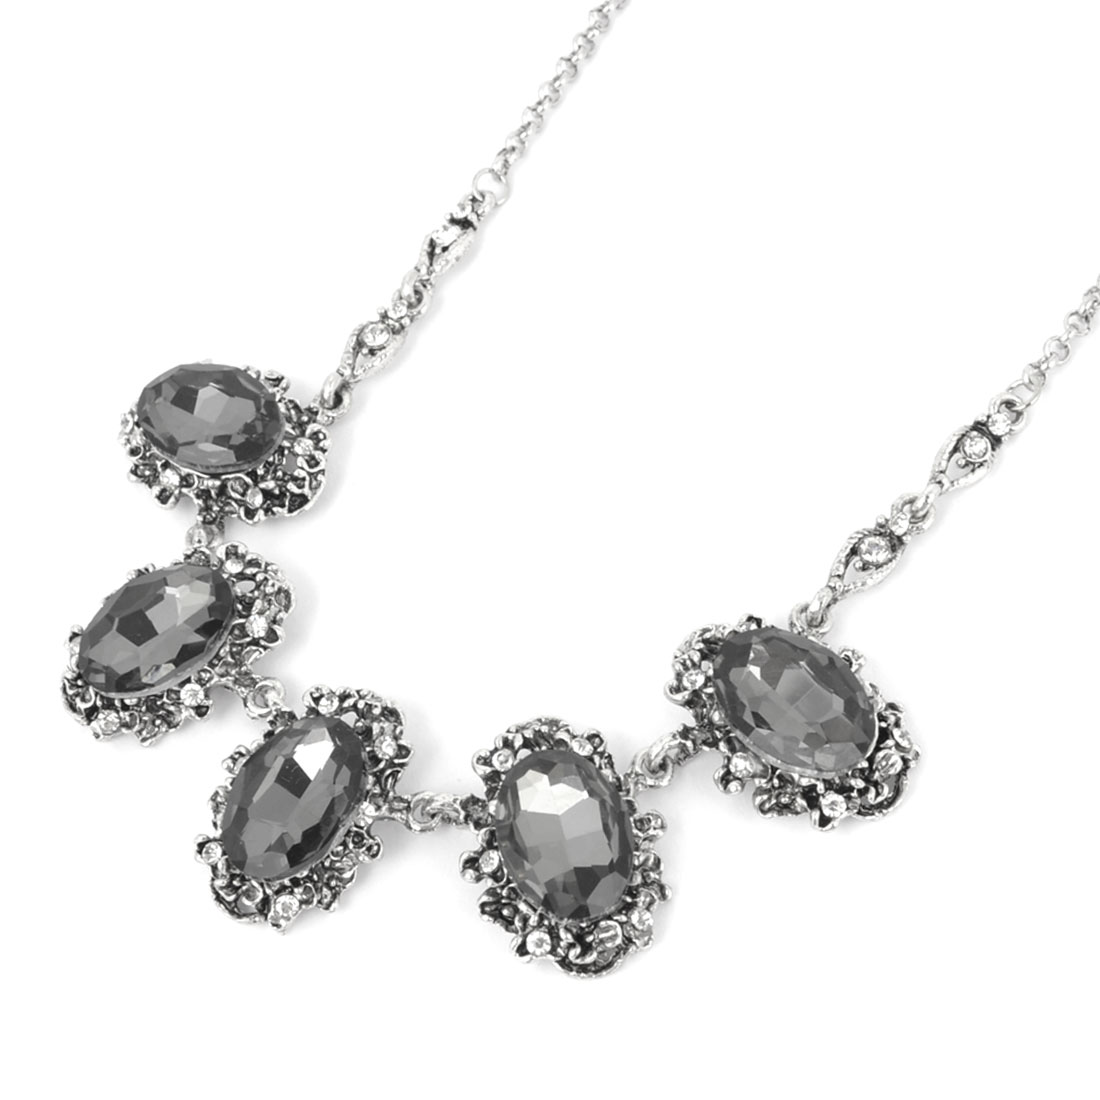 Women Banquet Retro Style Dark Gray Faux Crystal Embellished Slim Silver Tone Chain Necklace